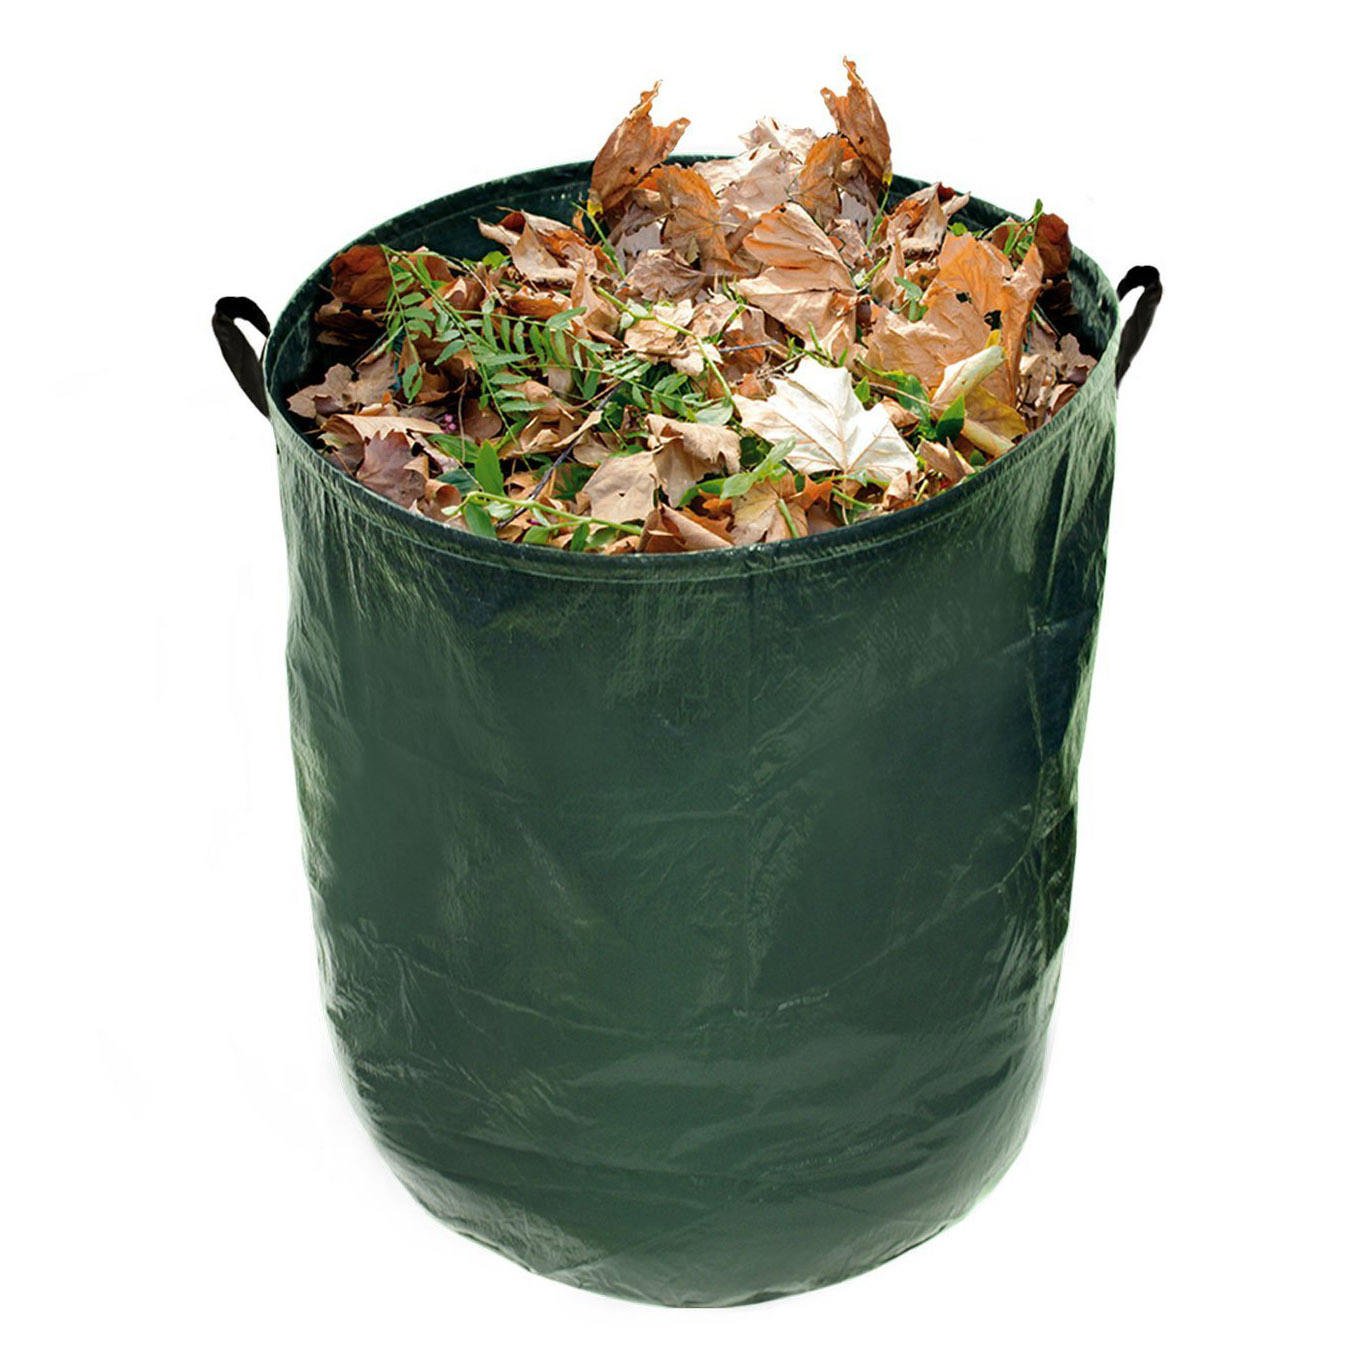 Gardening Bag 26 Gallons Collapsible and Reusable Gardening Containers Garden Leaf Waste Bag